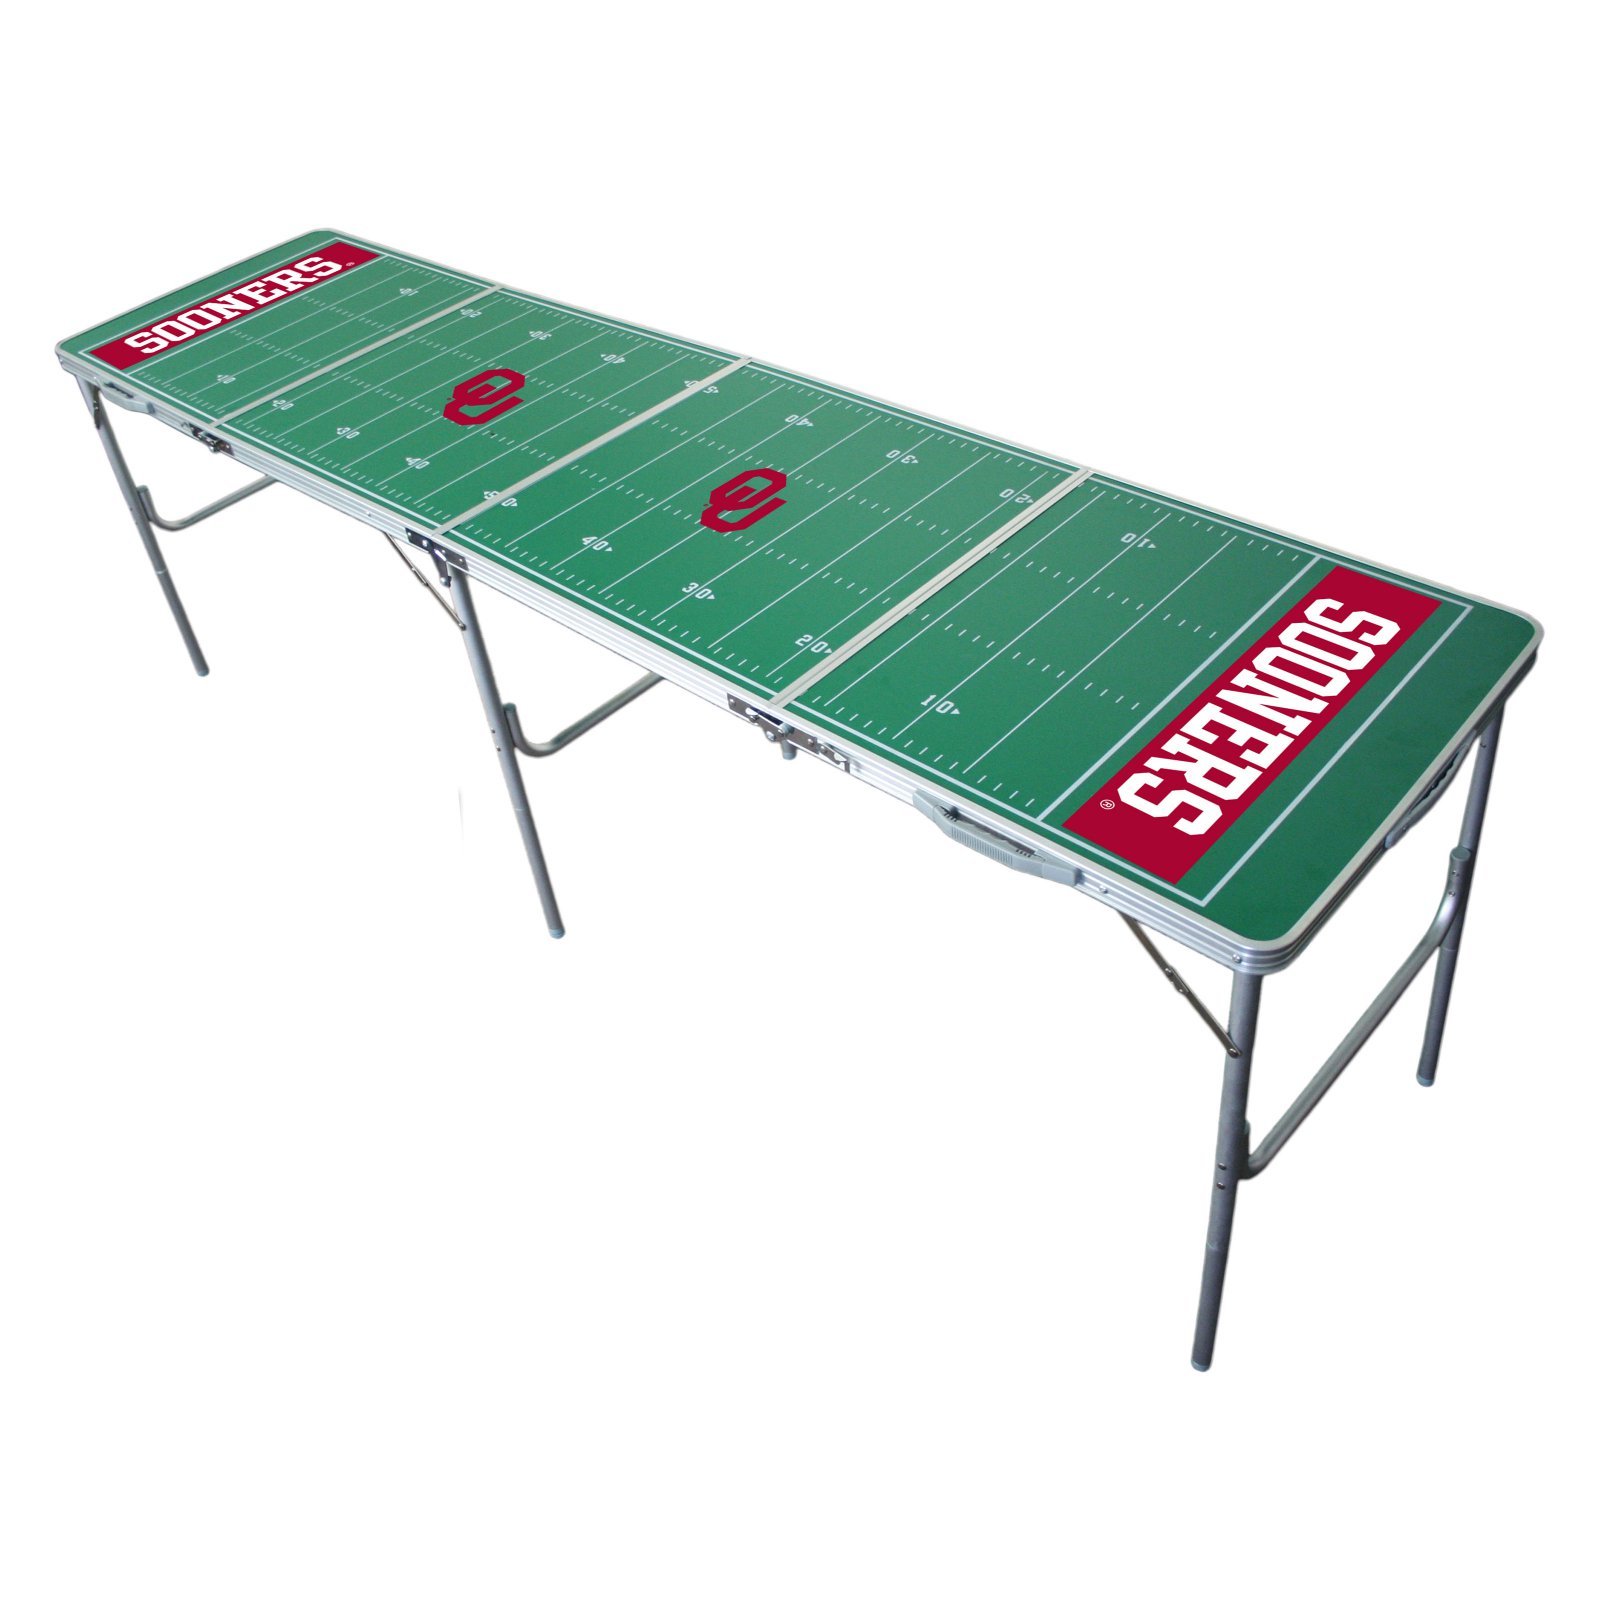 Tailgate Table 2 x 8 NCAA Georgetown by Wild Sports